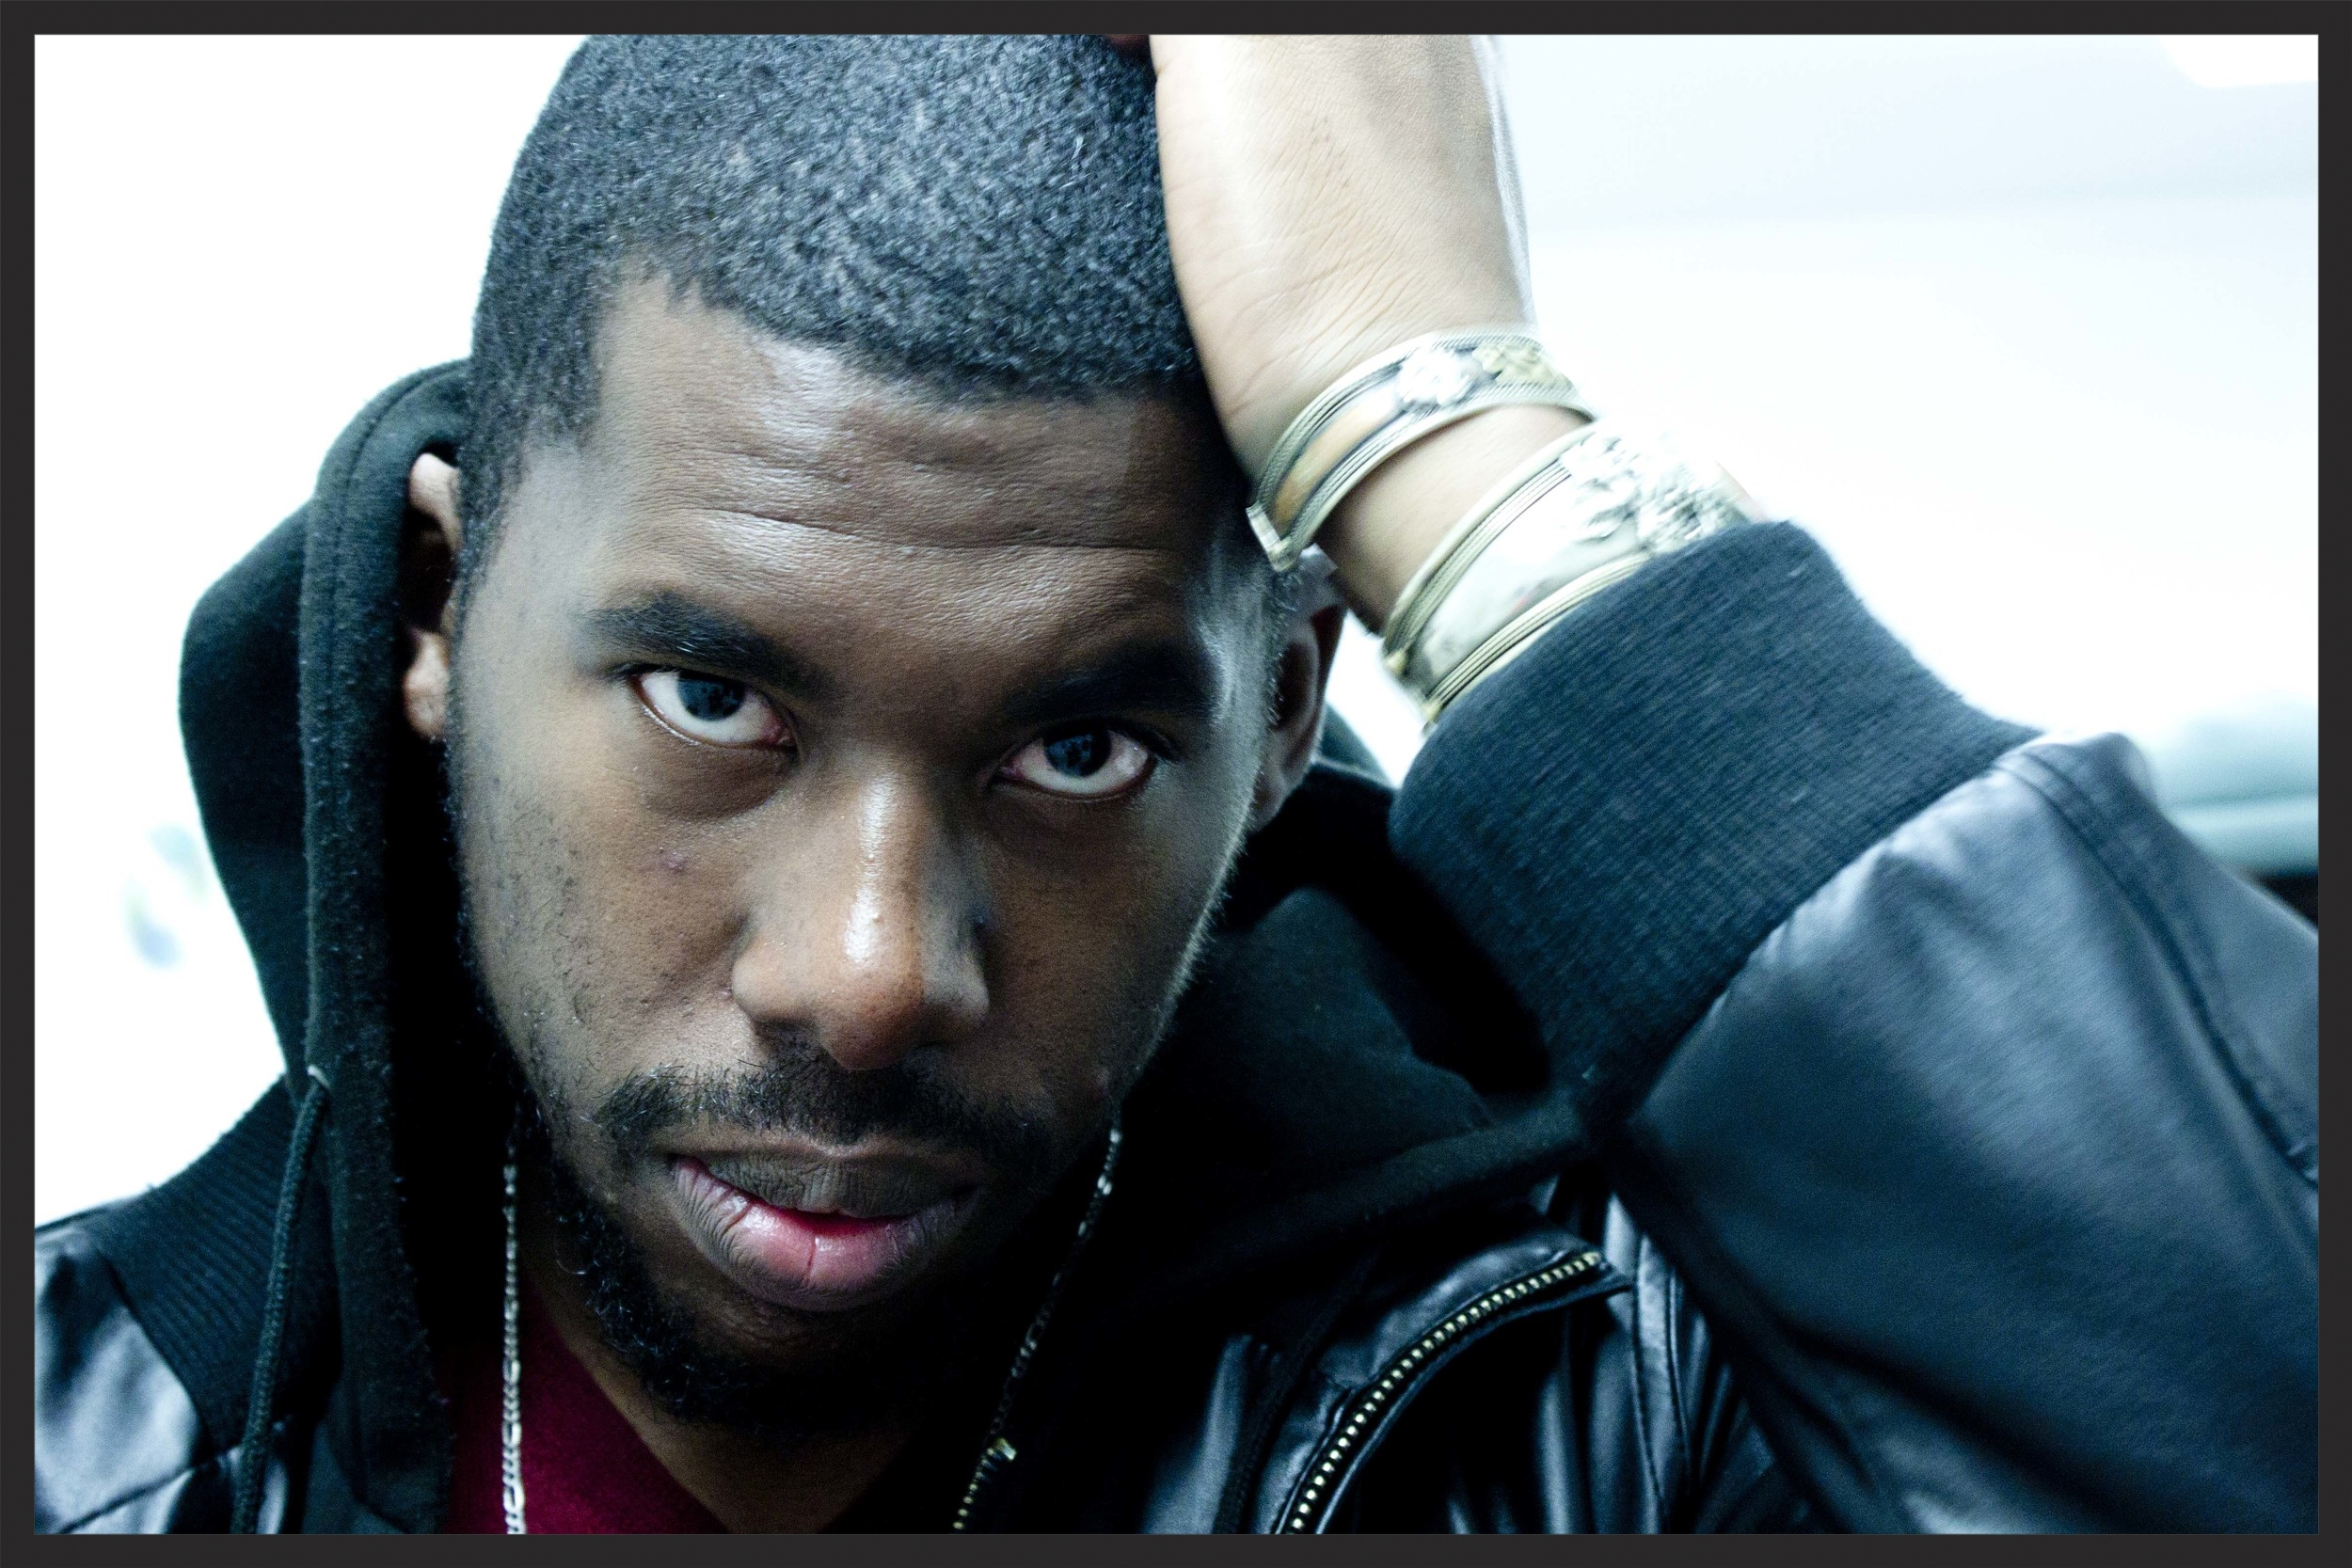 Steven Ellison AKA  Flying Lotus  who remixed and digitally released Girl I Love You in 2010.